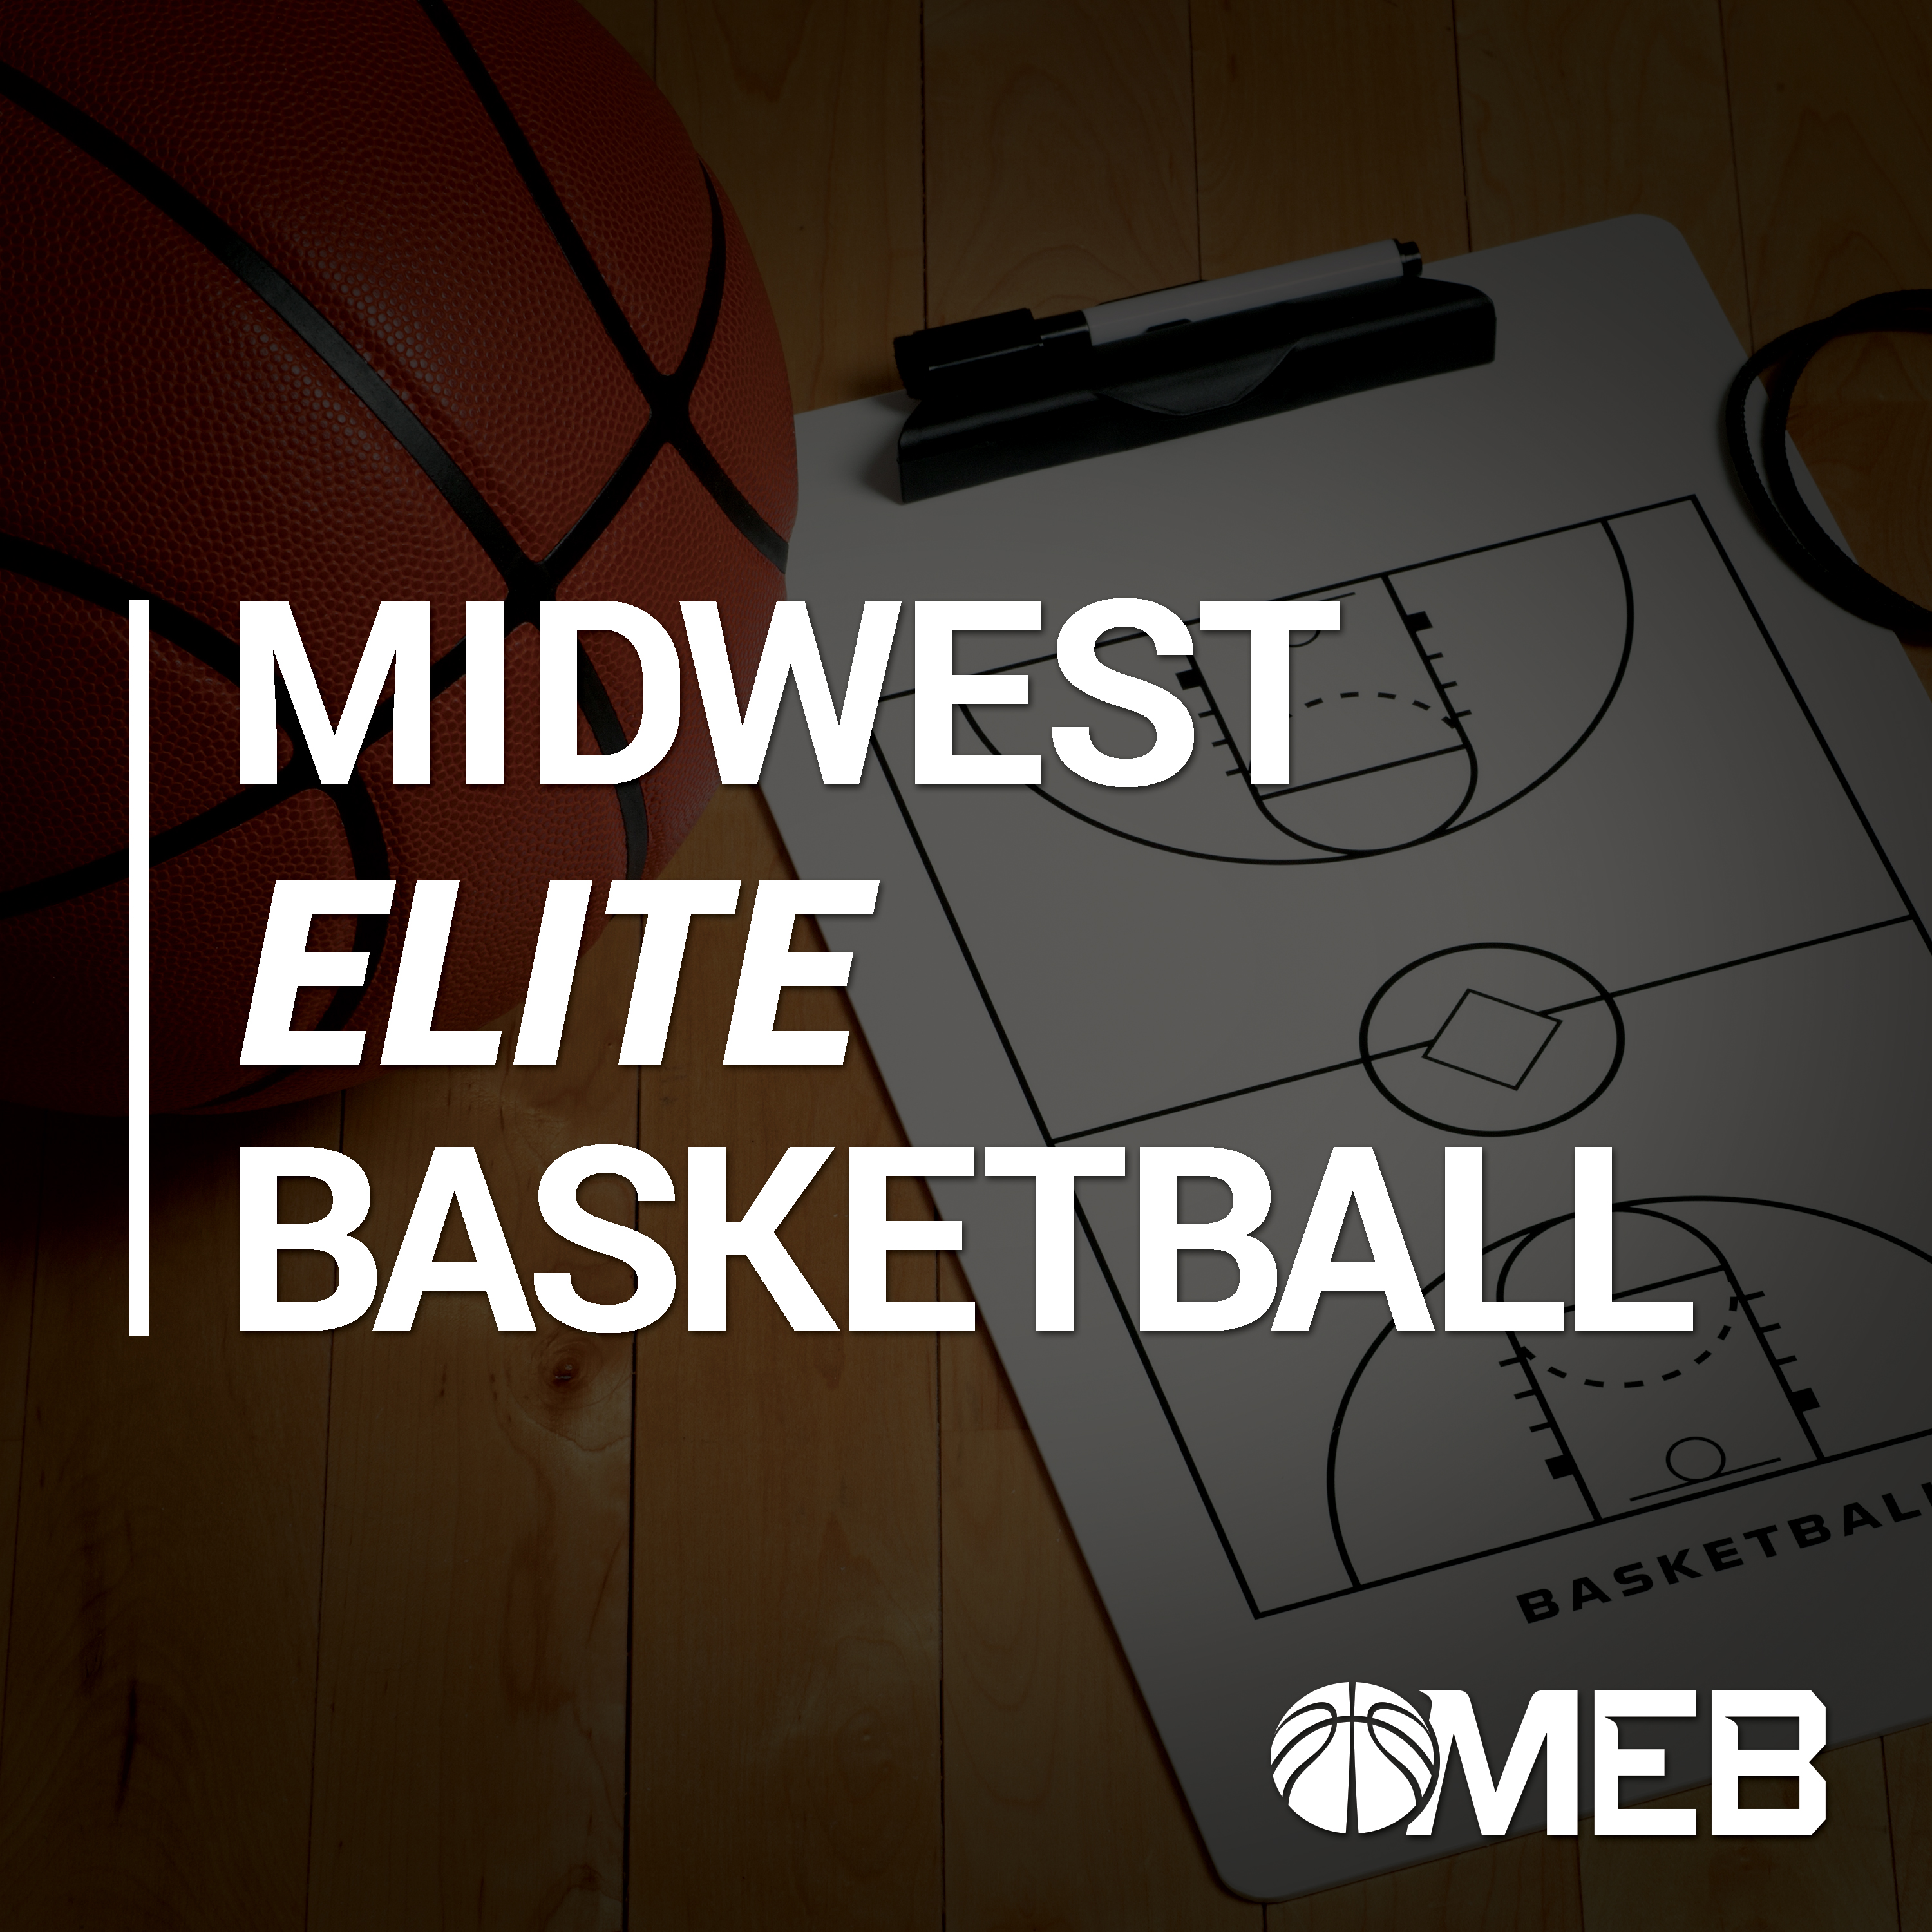 Midwest Elite Basketball